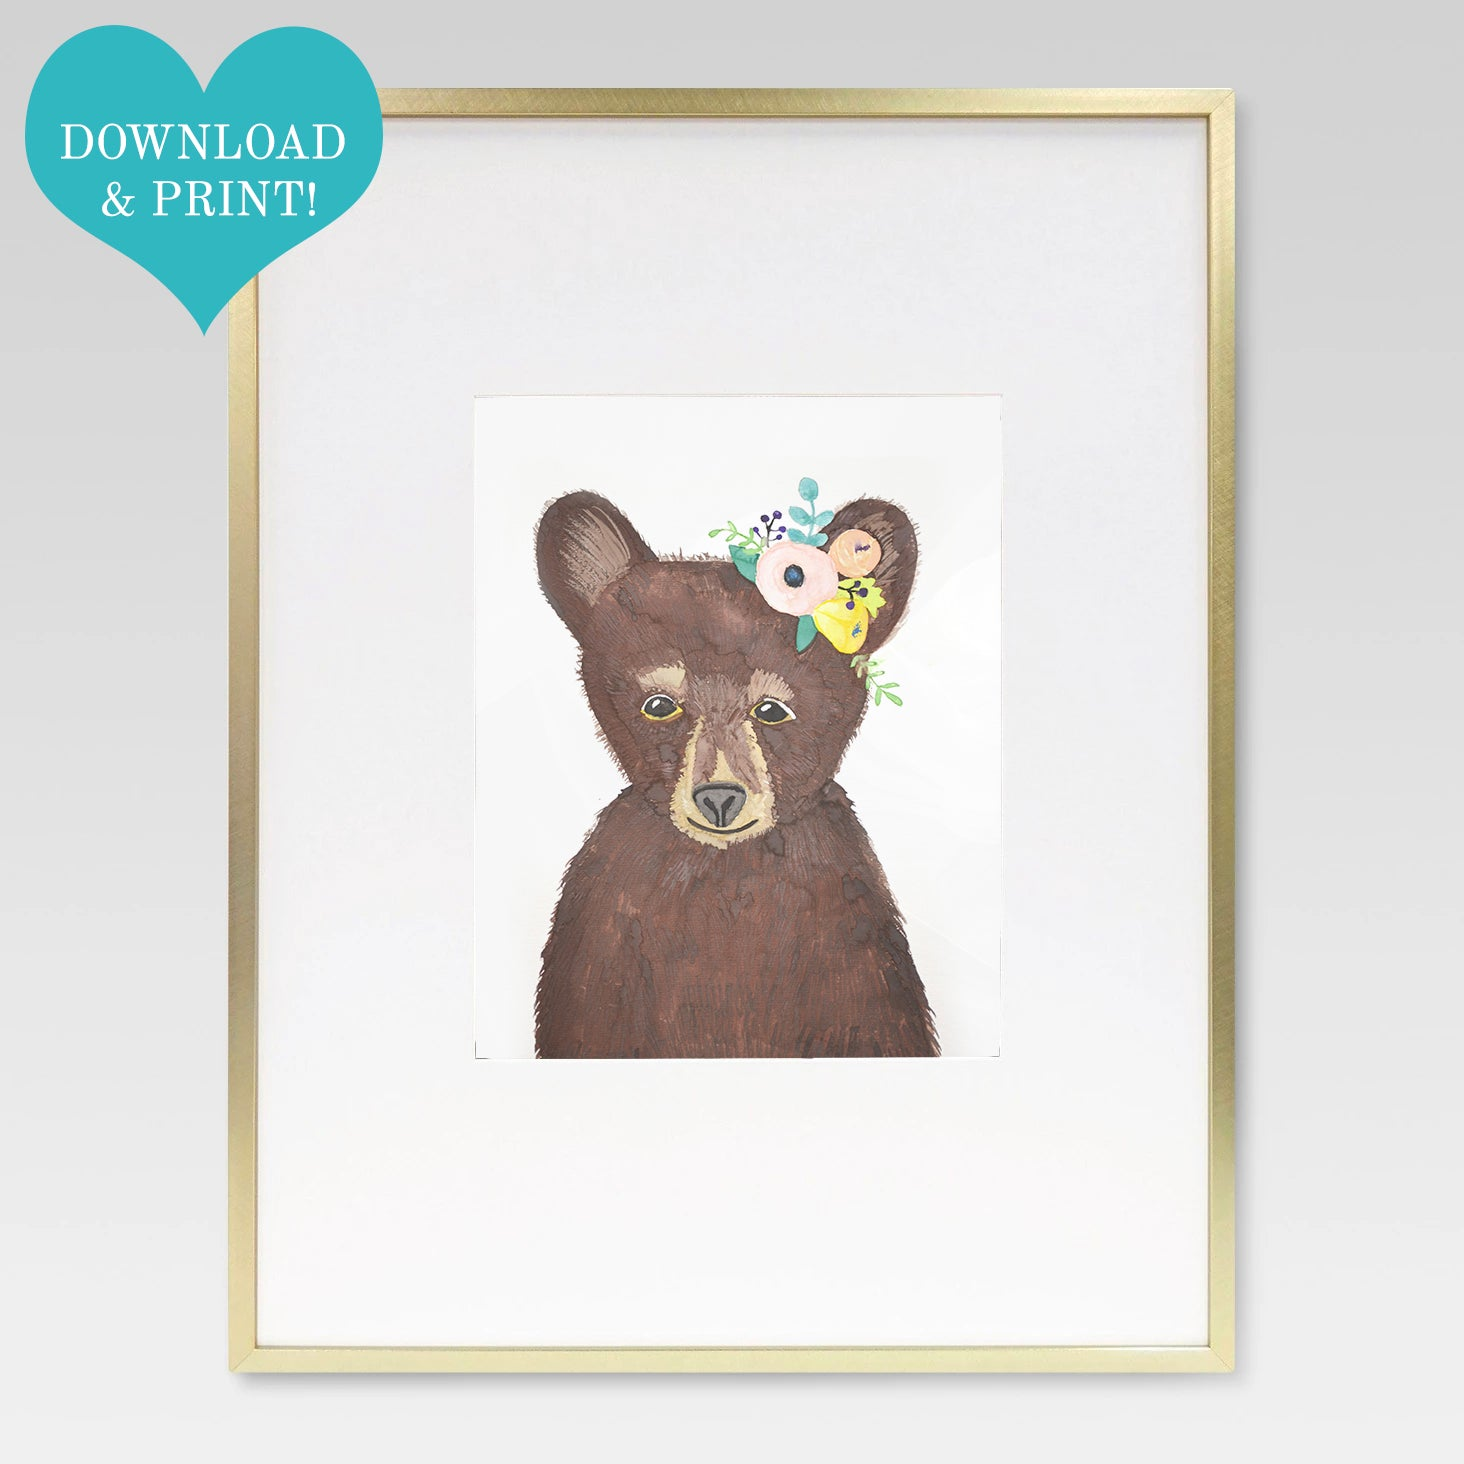 Boho Baby Bear Watercolor Print 8 x 10 Downloadable - Lindsay Ann Artistry